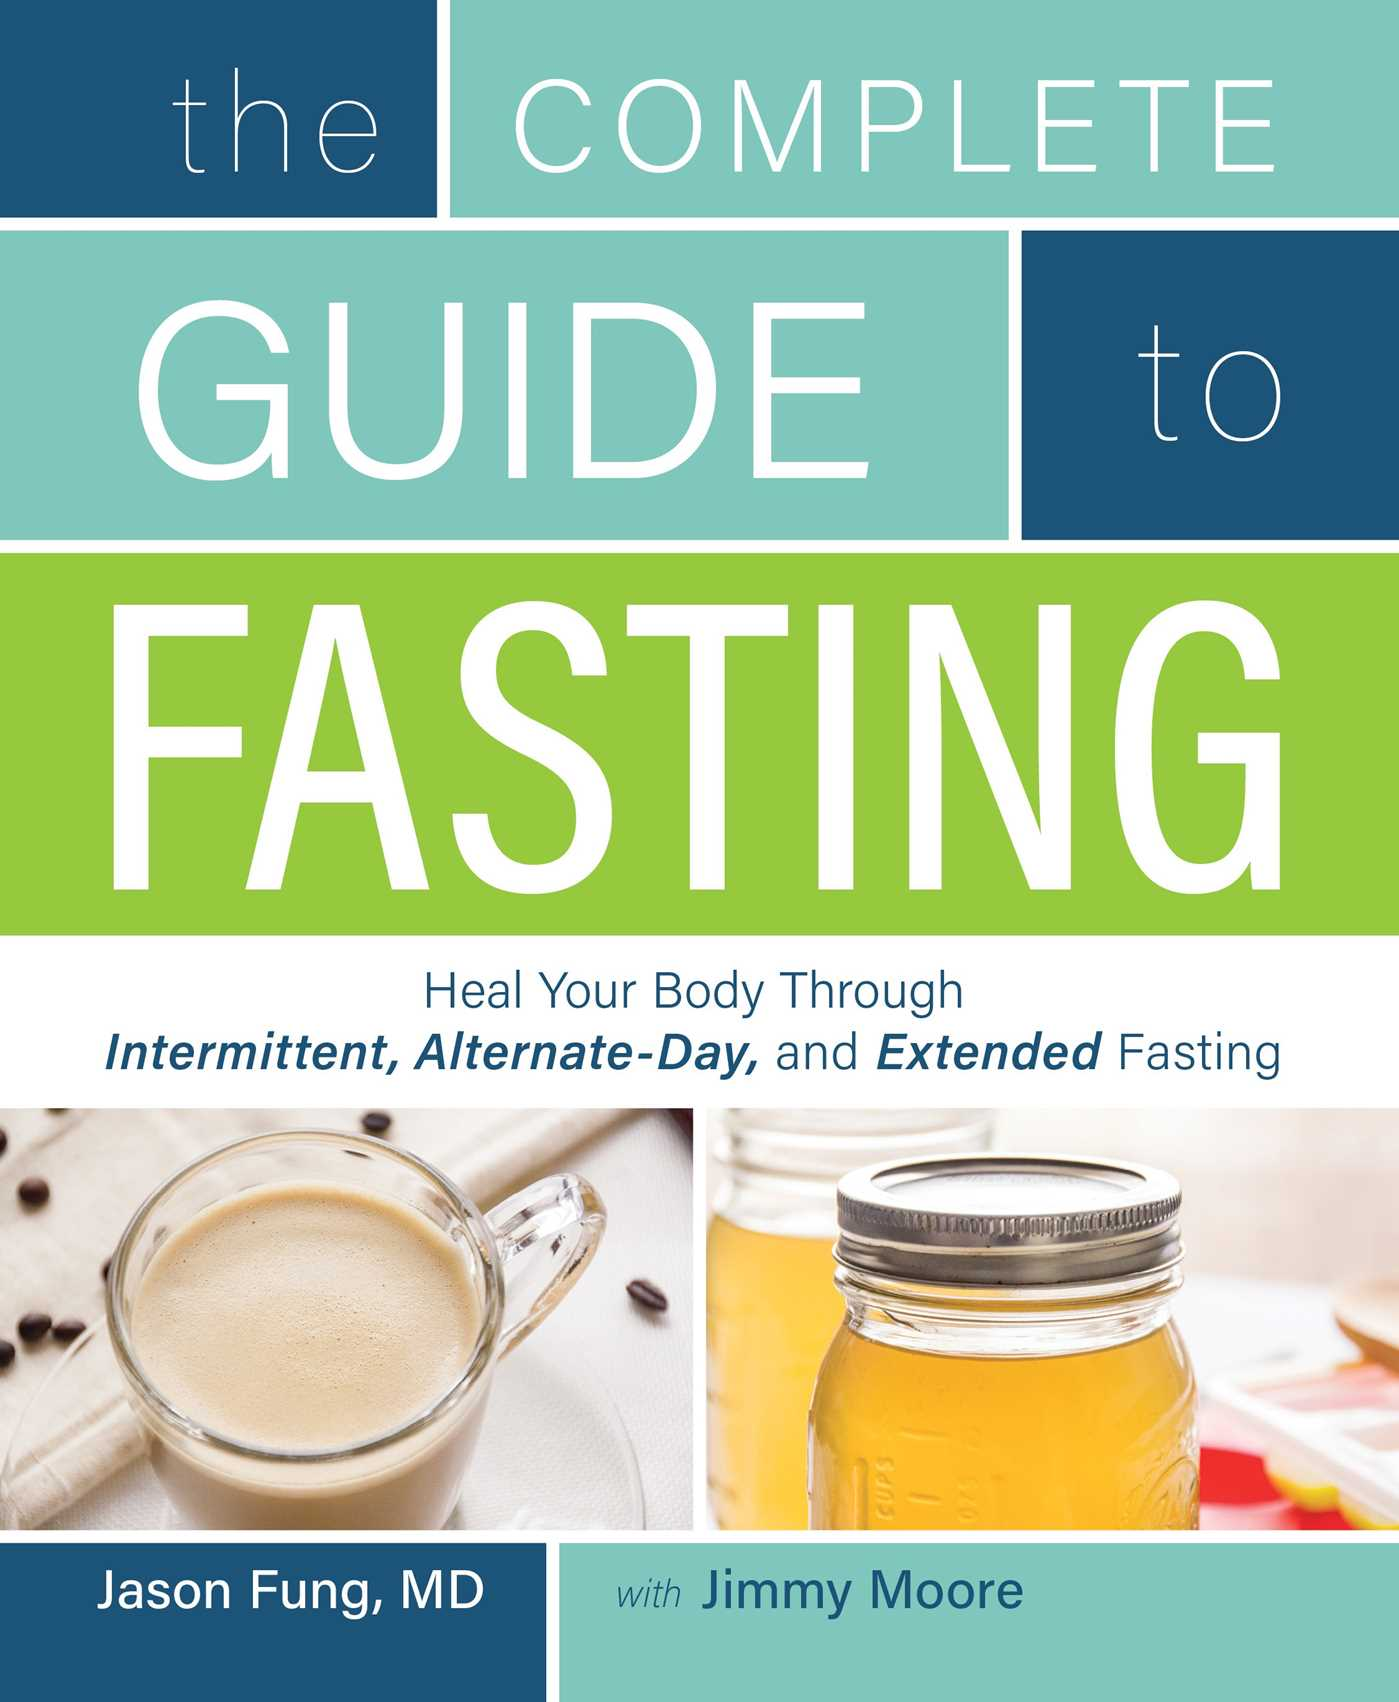 The Complete Guide to Fasting : Heal Your Body Through Intermittent,  Alternate-Day, and Extended Fasting - Walmart.com